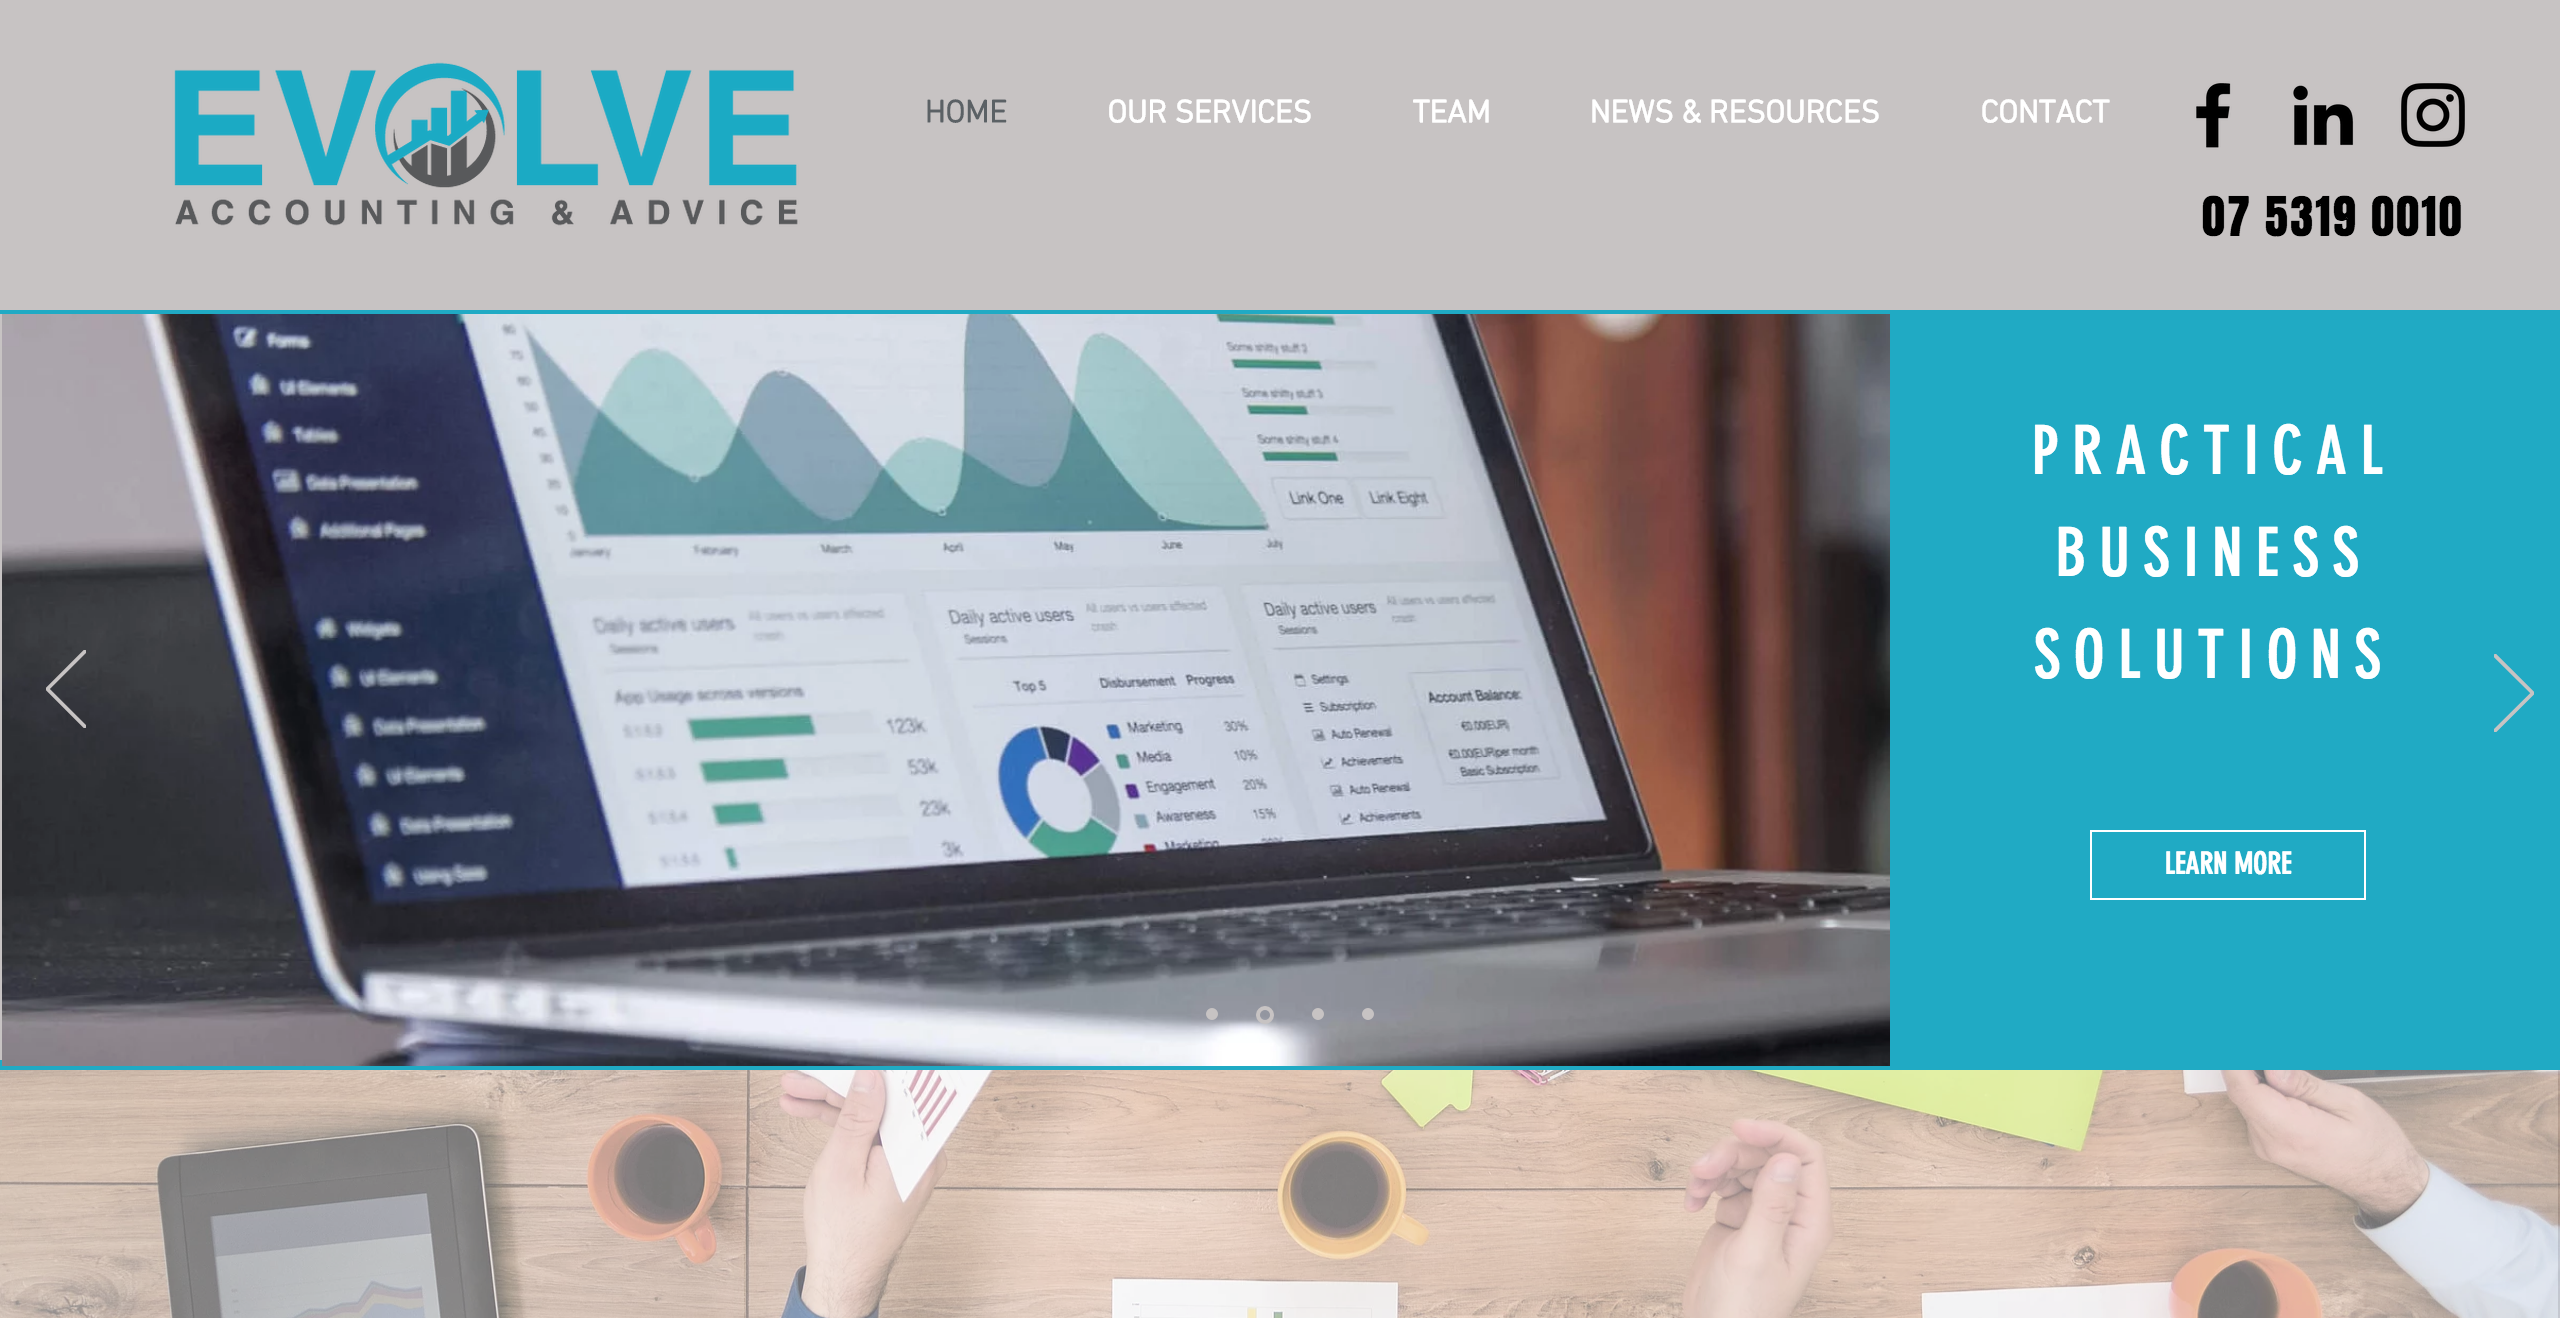 Evolve Accounting & Advice